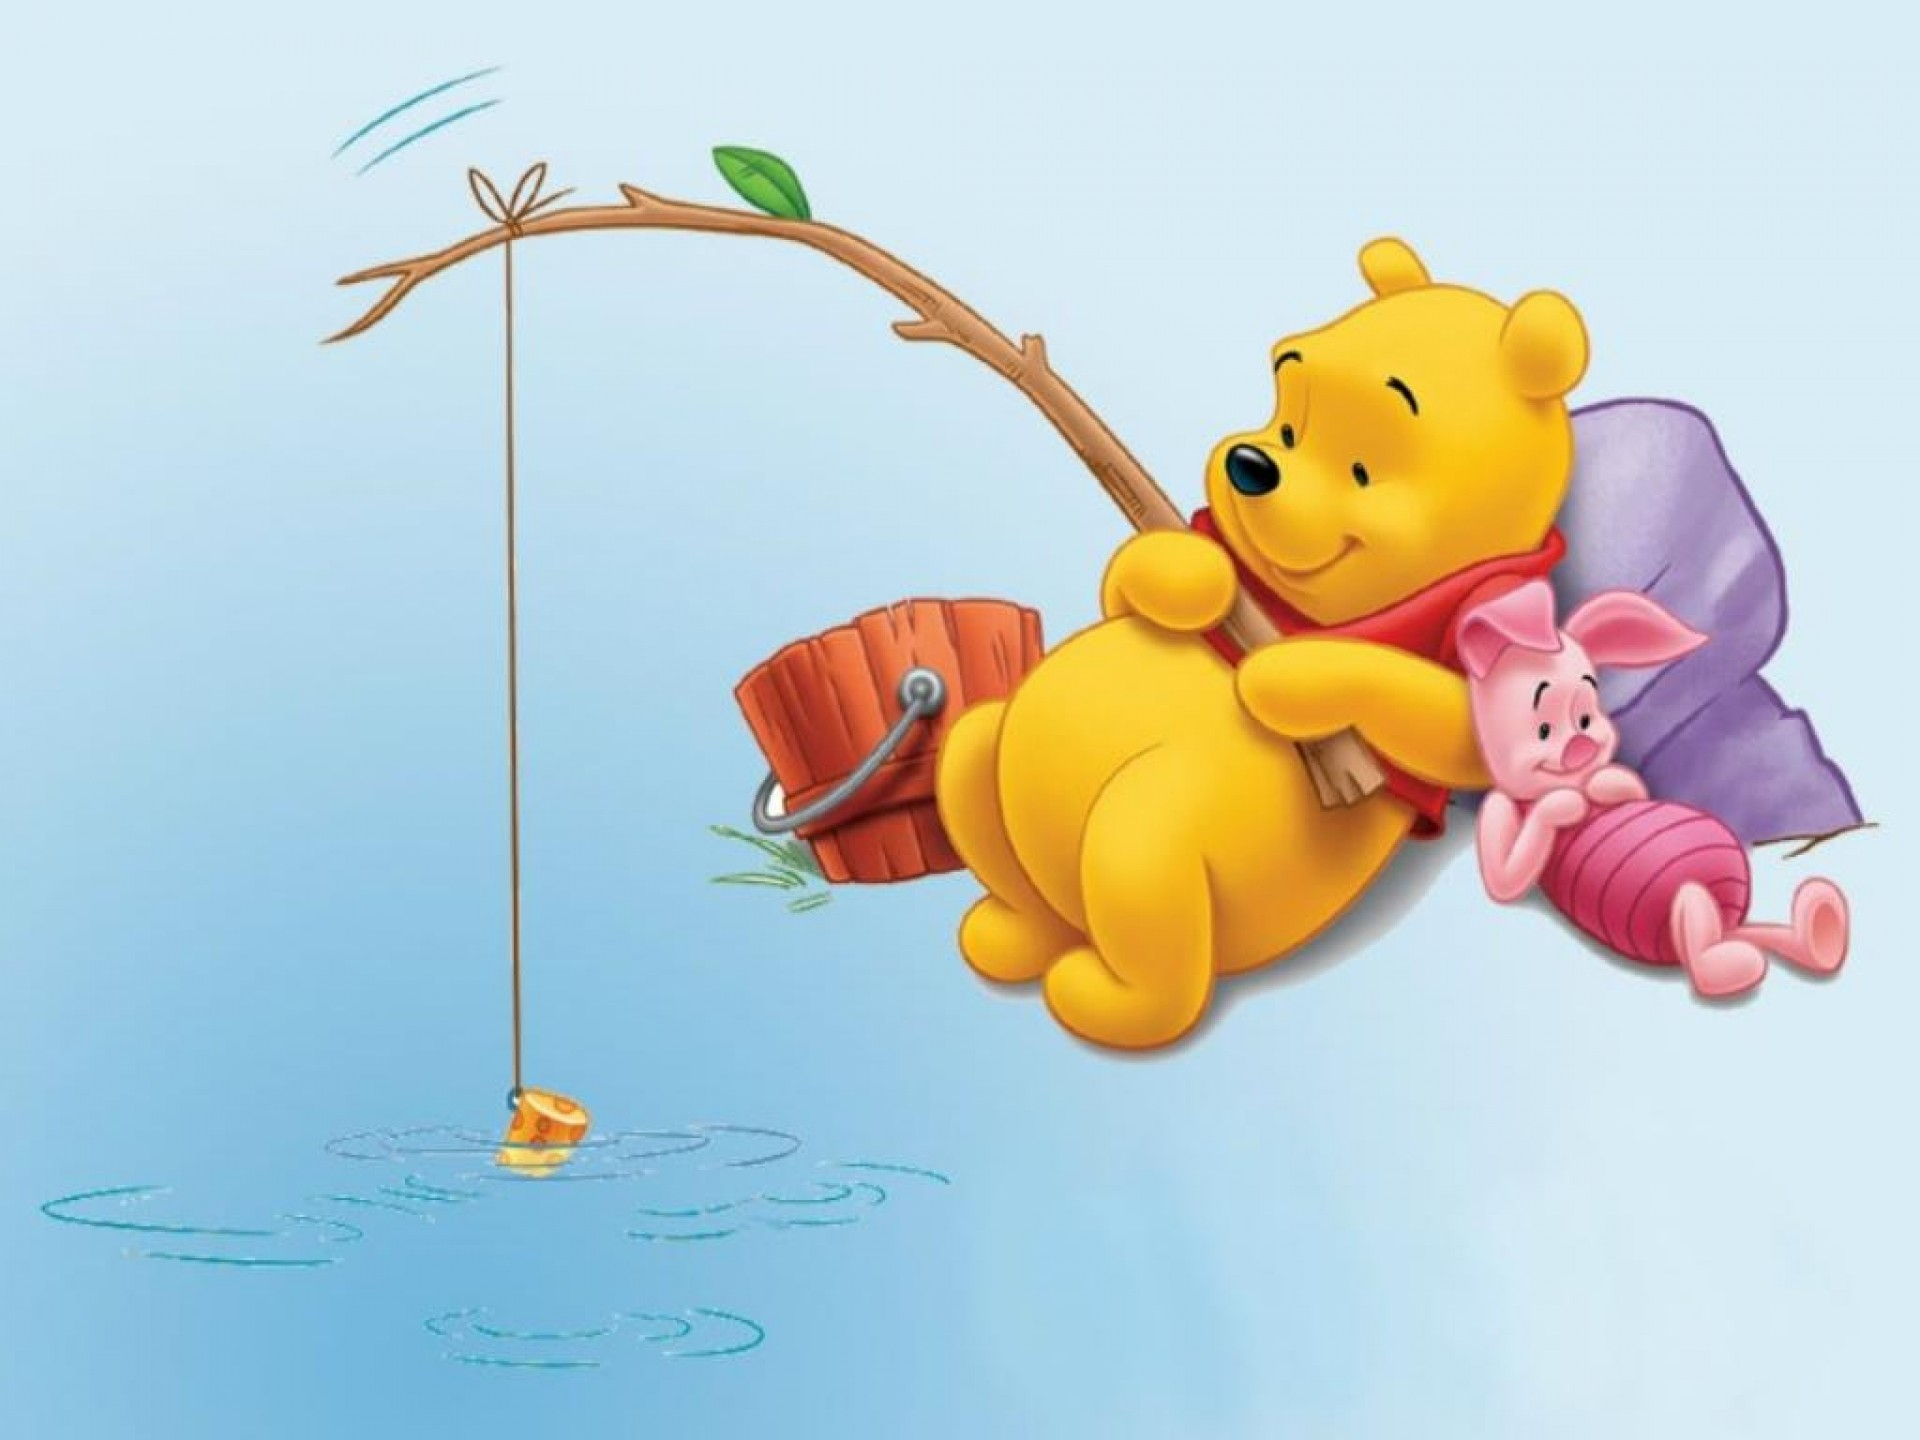 Pooh bear wallpapers 64 images 1920x1440 winnie the pooh disney full hd wallpaper image for phone thecheapjerseys Images